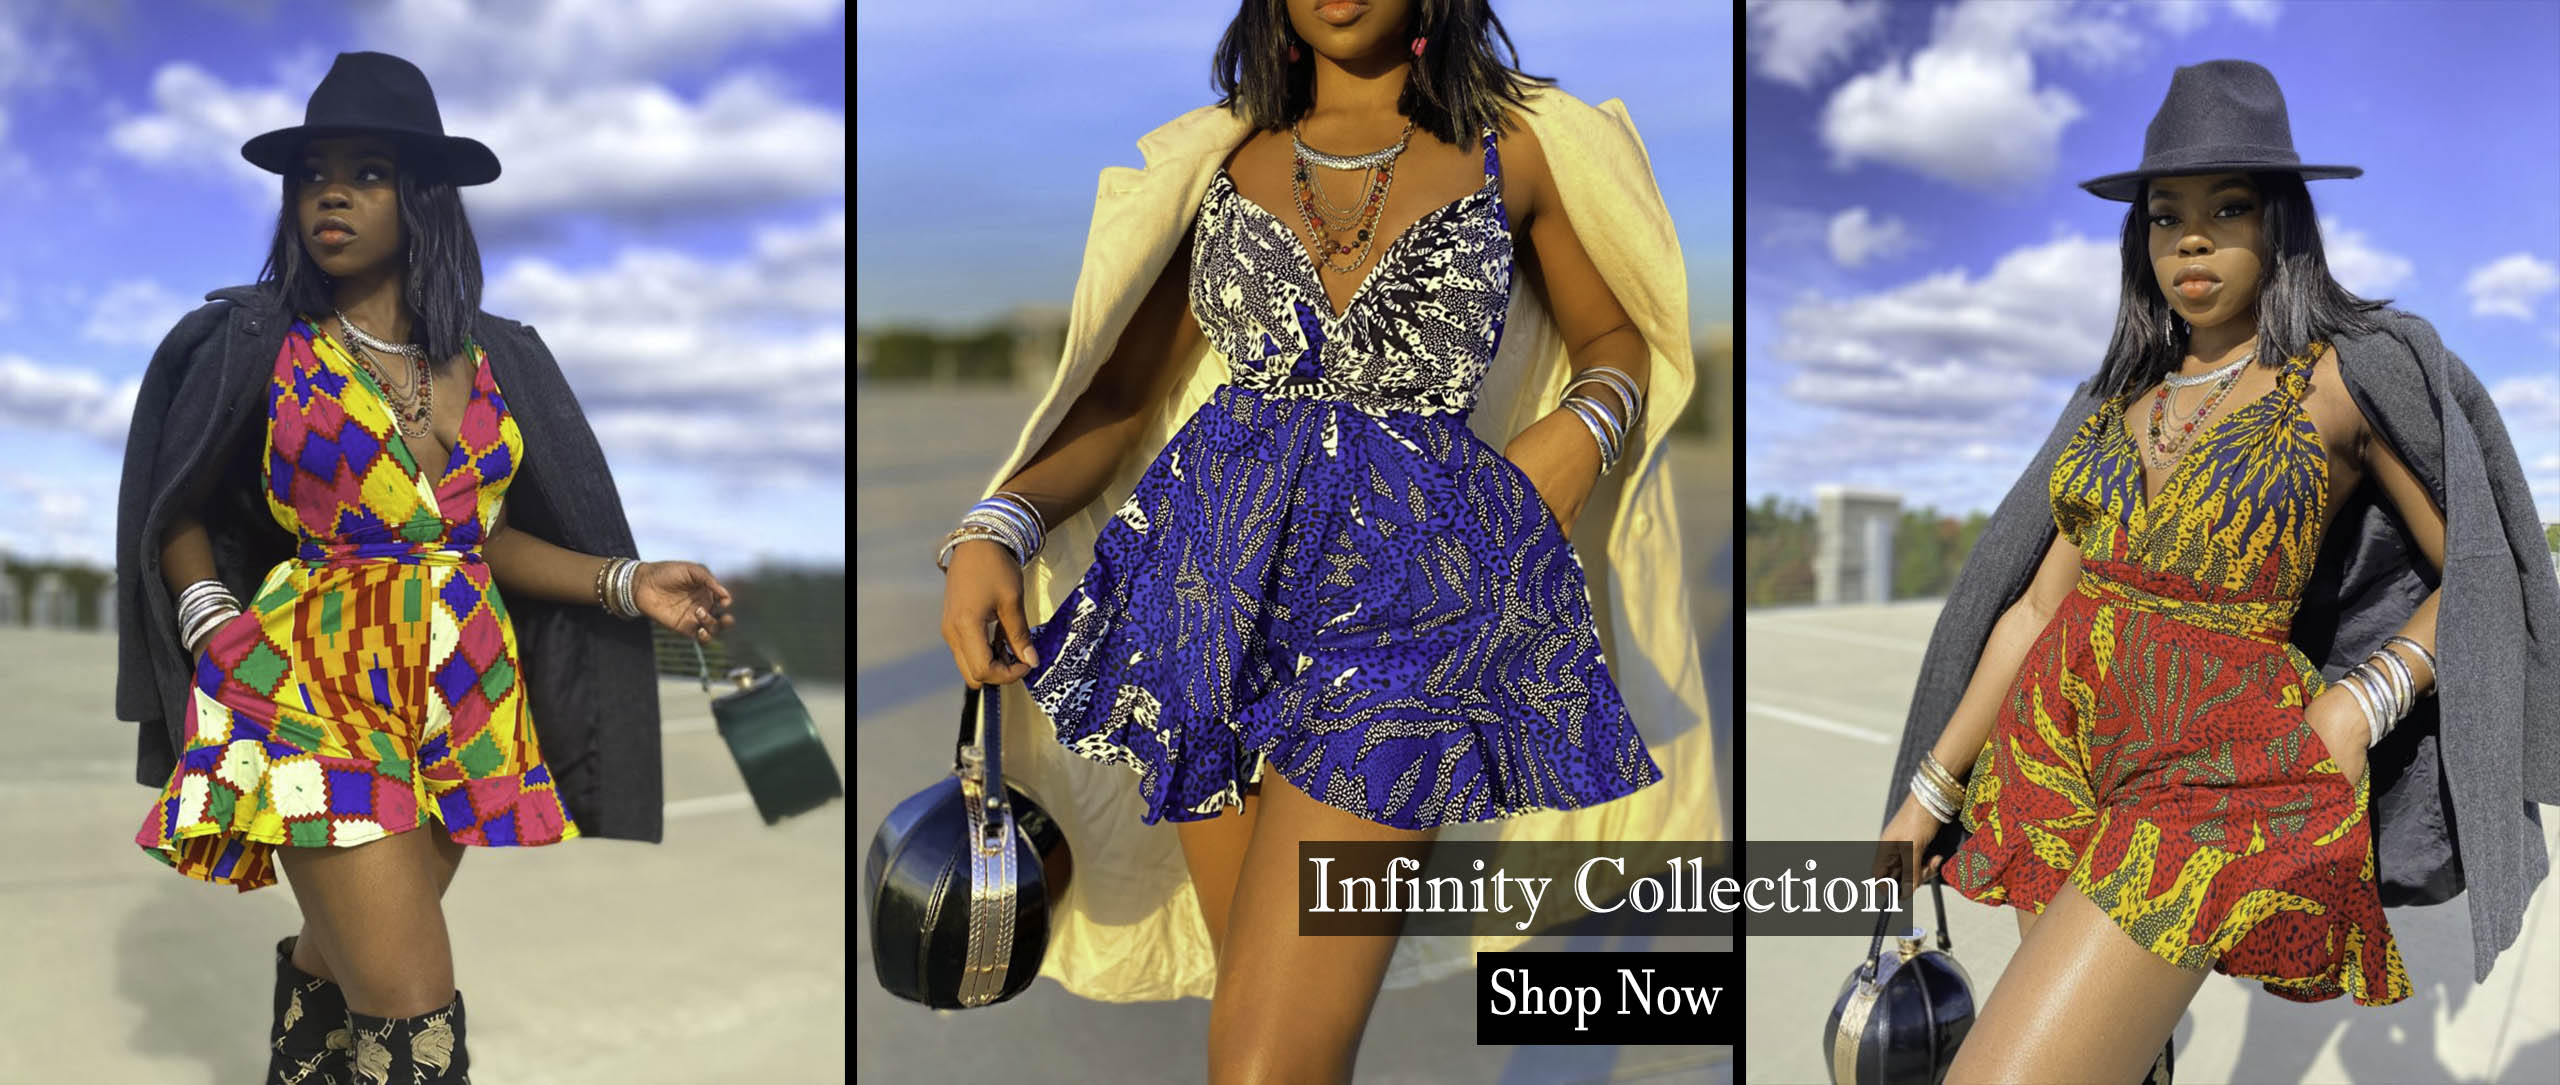 infinity Romper Collection